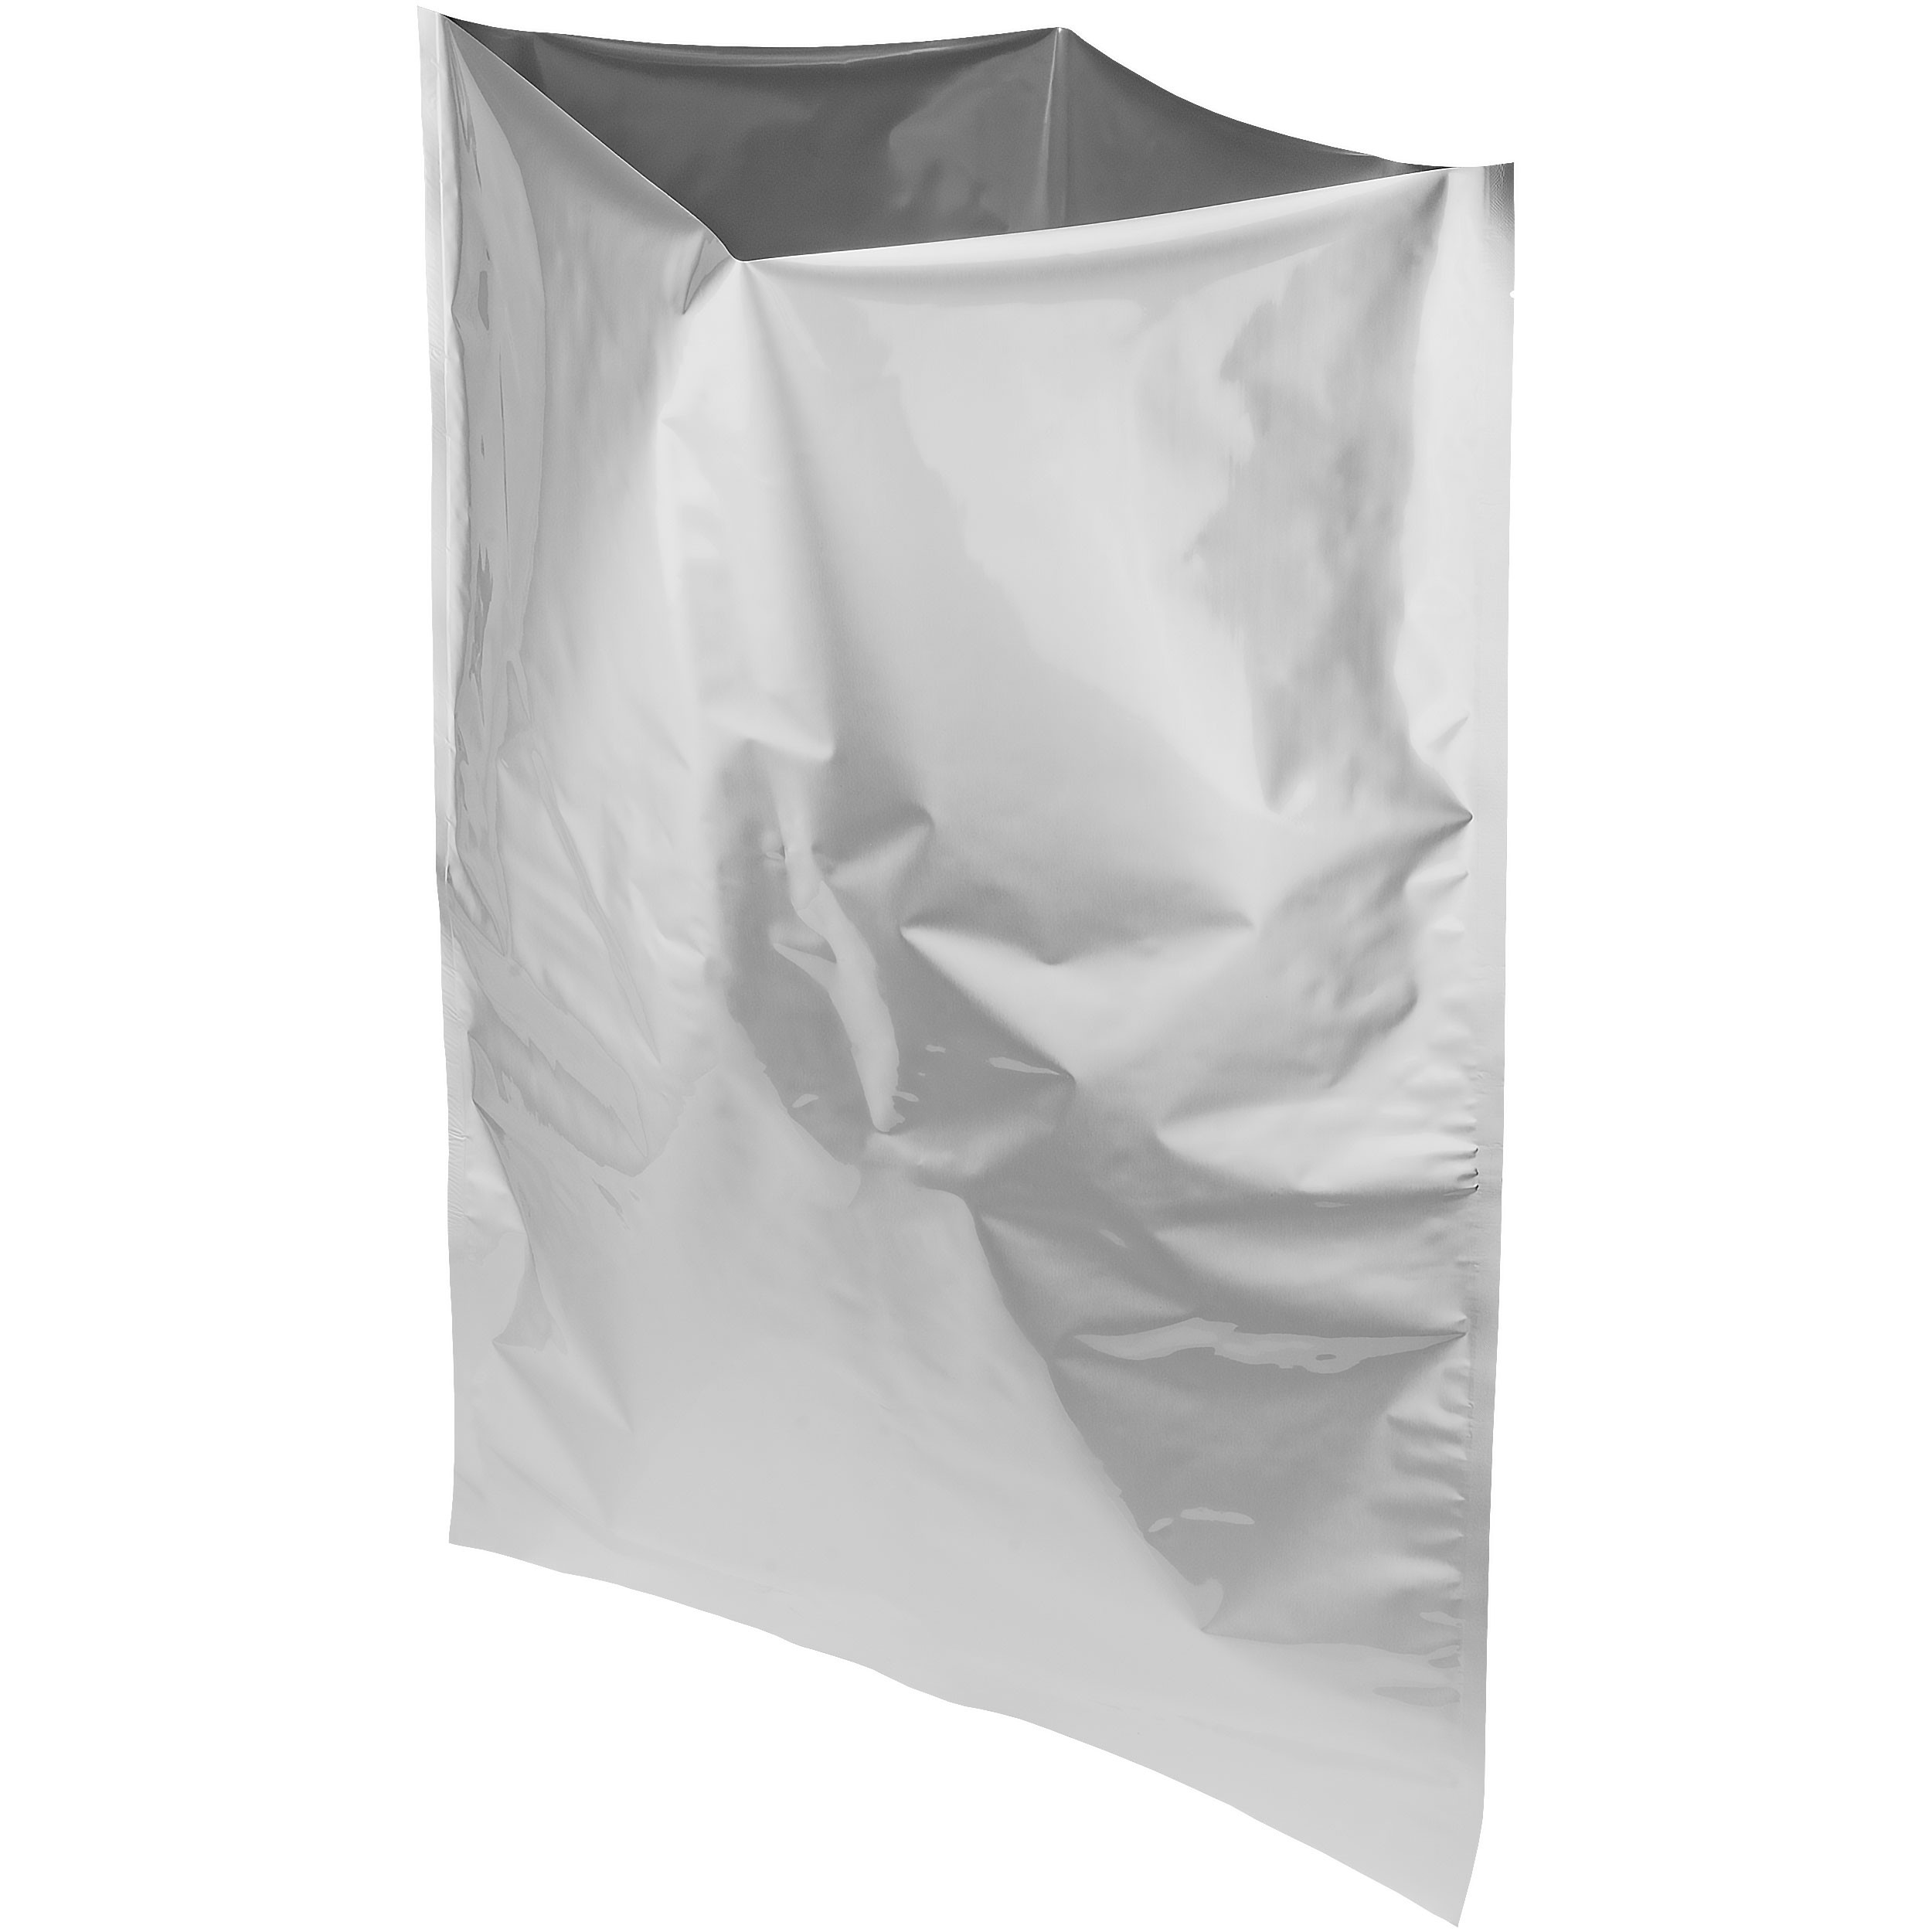 Dry-Packs Mylar Bags 20 by 30-Inch 5 Gallon 4.5 Mil for Dried Dehydrated Food and Long Term Storage